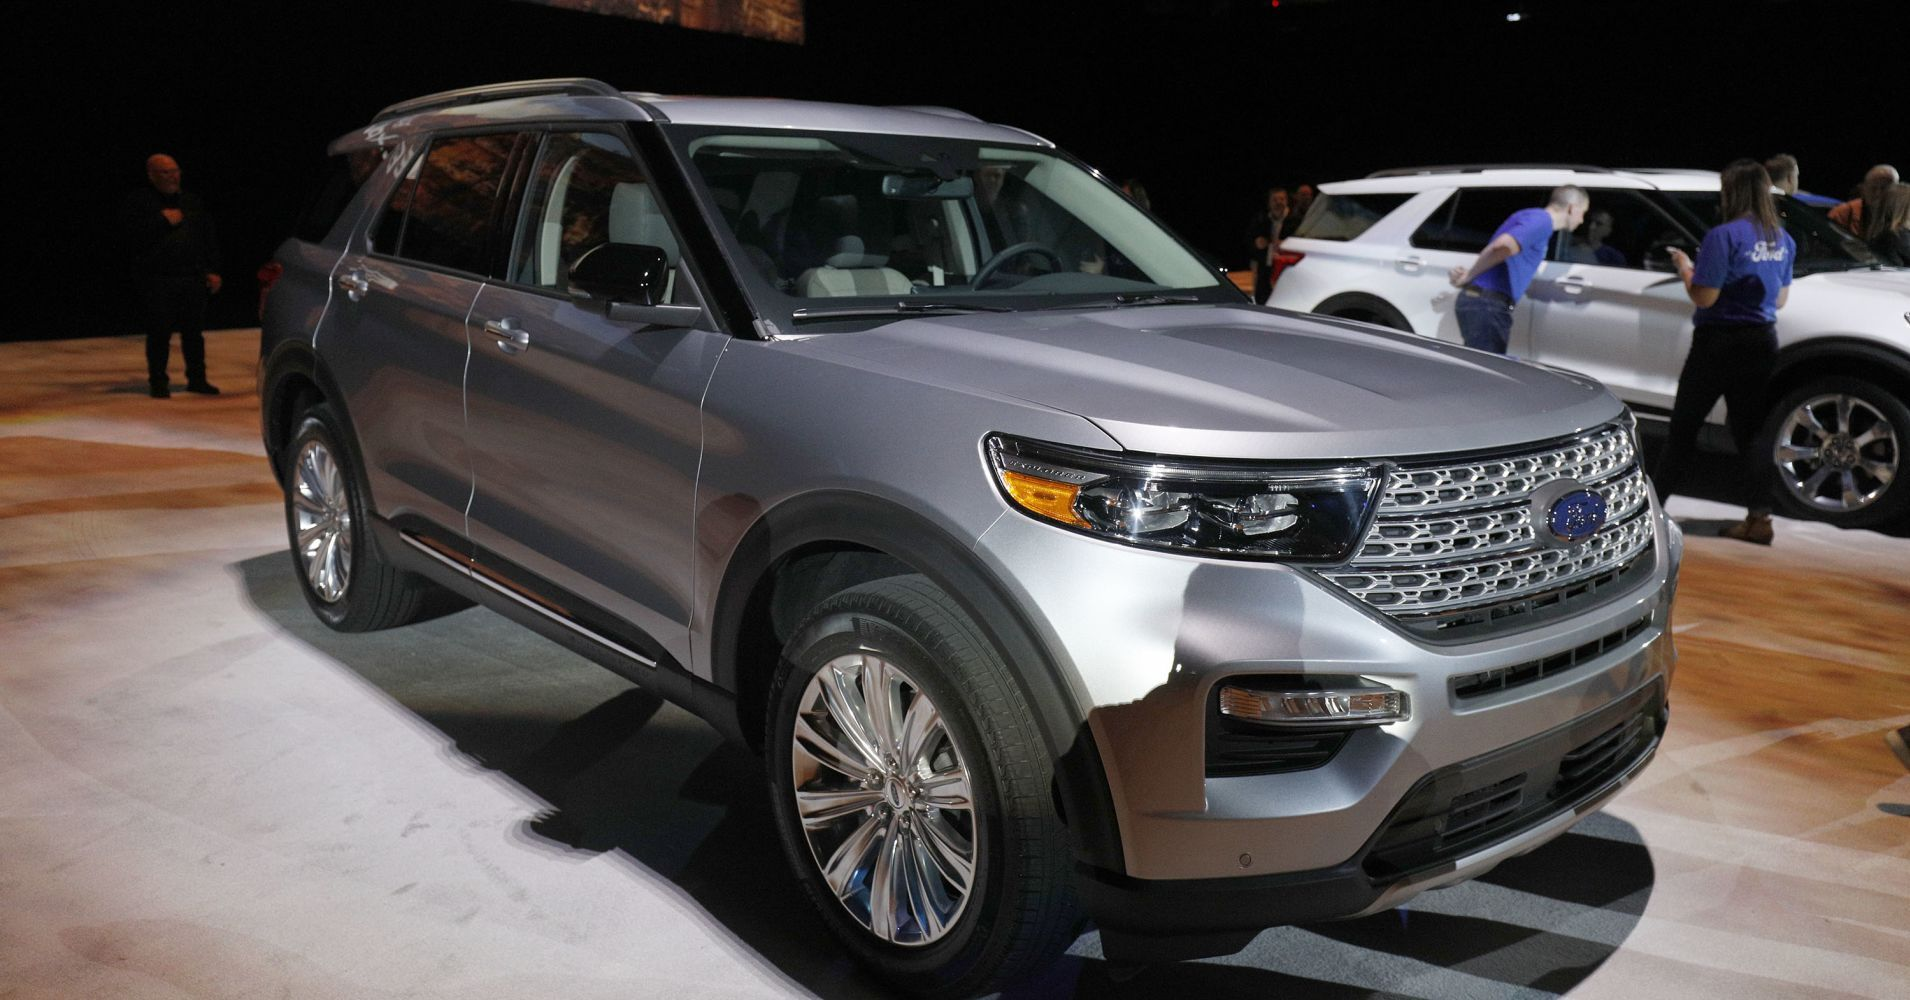 Ford Unveils The New 2020 Explorer The Popular Suv S First Redesign In 8 Years Detroit Auto Show Popular Suvs Sports Cars